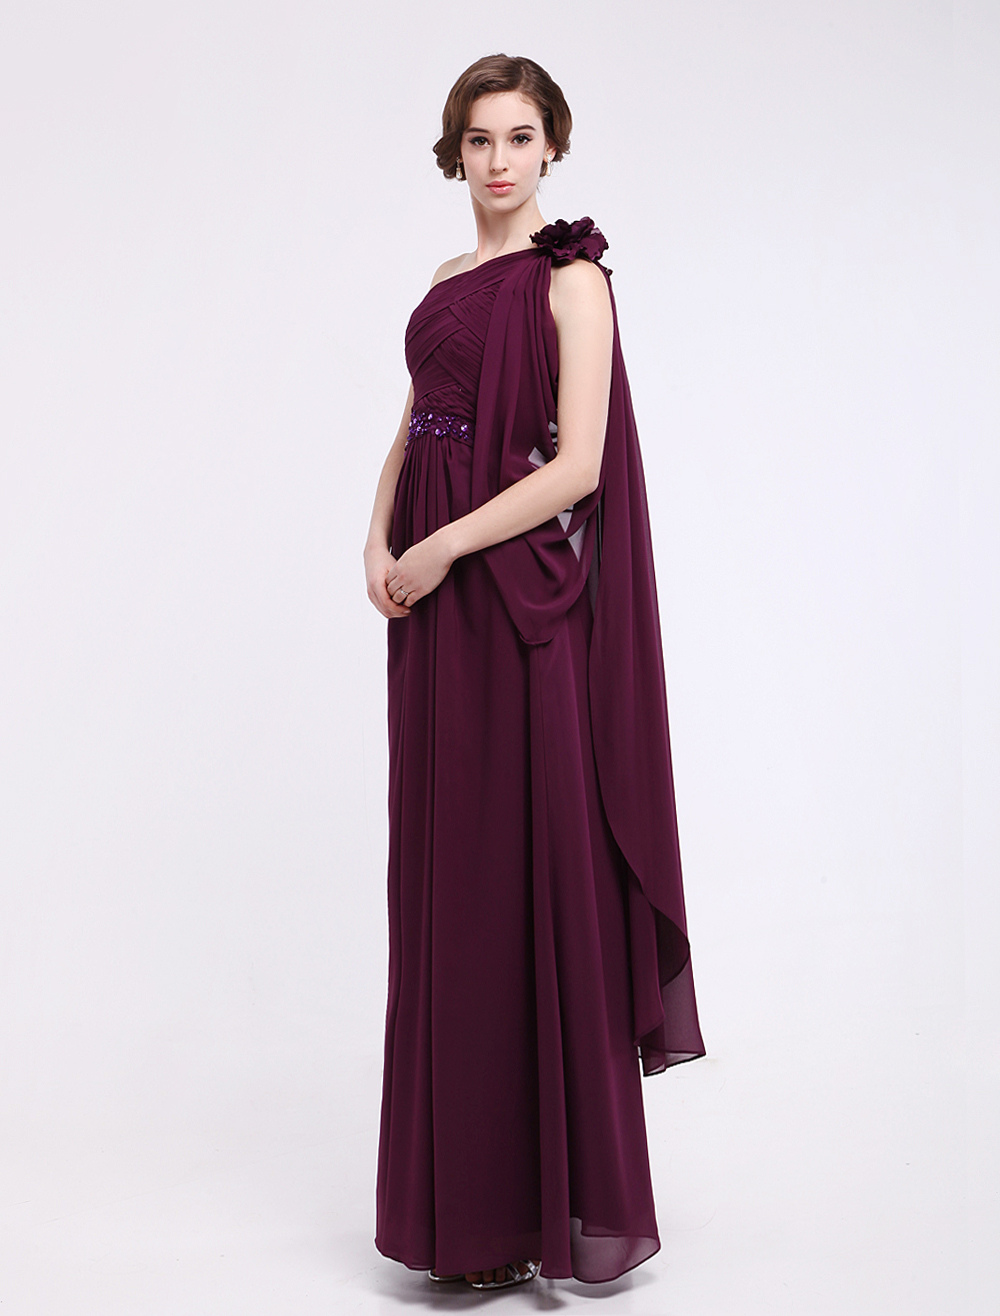 Buy Burgundy A-line One-Shoulder Ruched Chiffon Mother of the Bride Dress Milanoo for $159.27 in Milanoo store